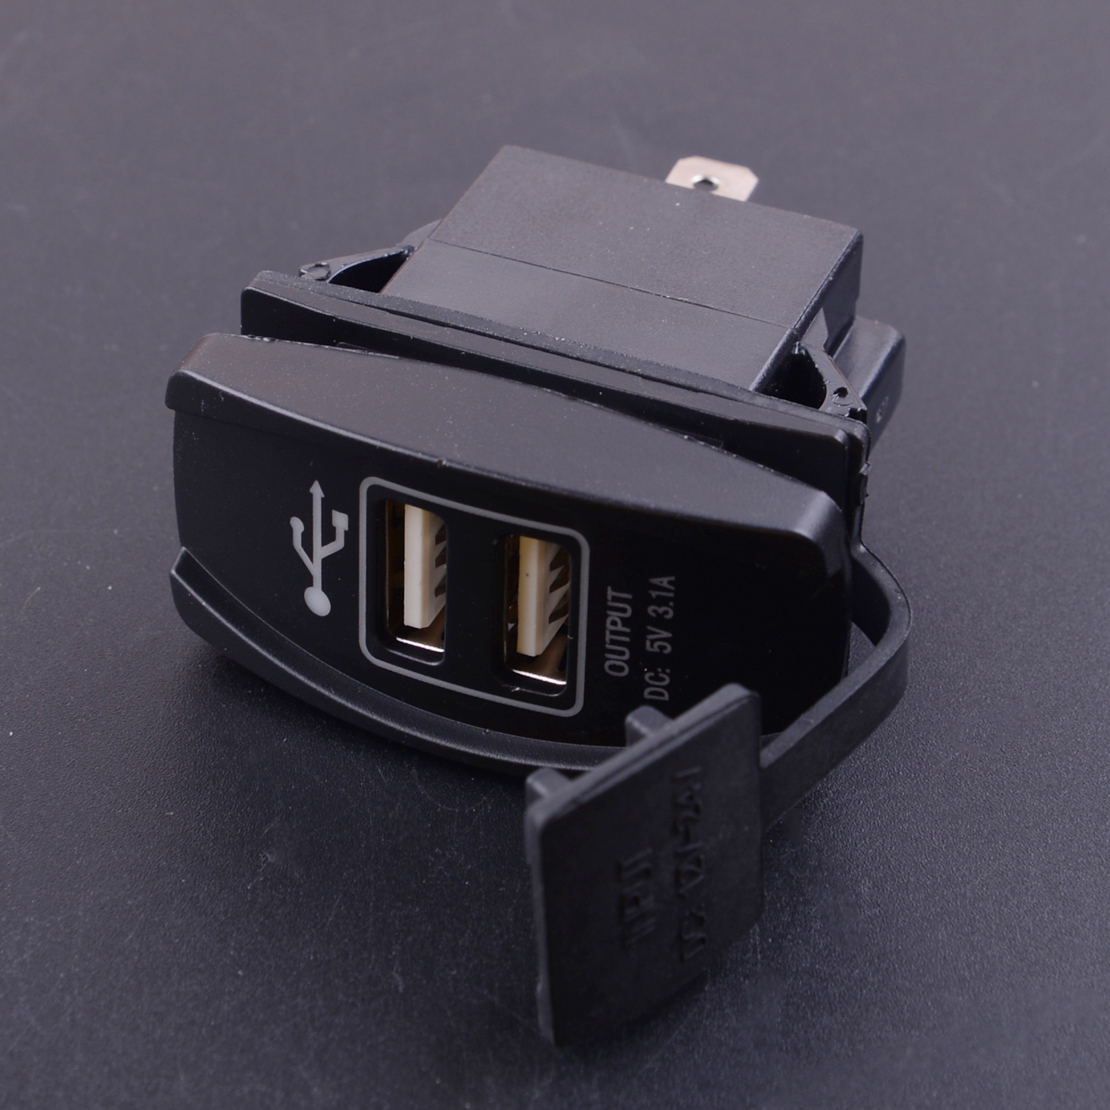 Black <font><b>Car</b></font> Auto <font><b>12V</b></font> 24V <font><b>3.1A</b></font> Blue LED <font><b>Dual</b></font> <font><b>USB</b></font> Power Supply Mobile Phone Cigarette Lighter <font><b>Charger</b></font> Port <font><b>Socket</b></font> <font><b>Adapter</b></font> Waterproof image